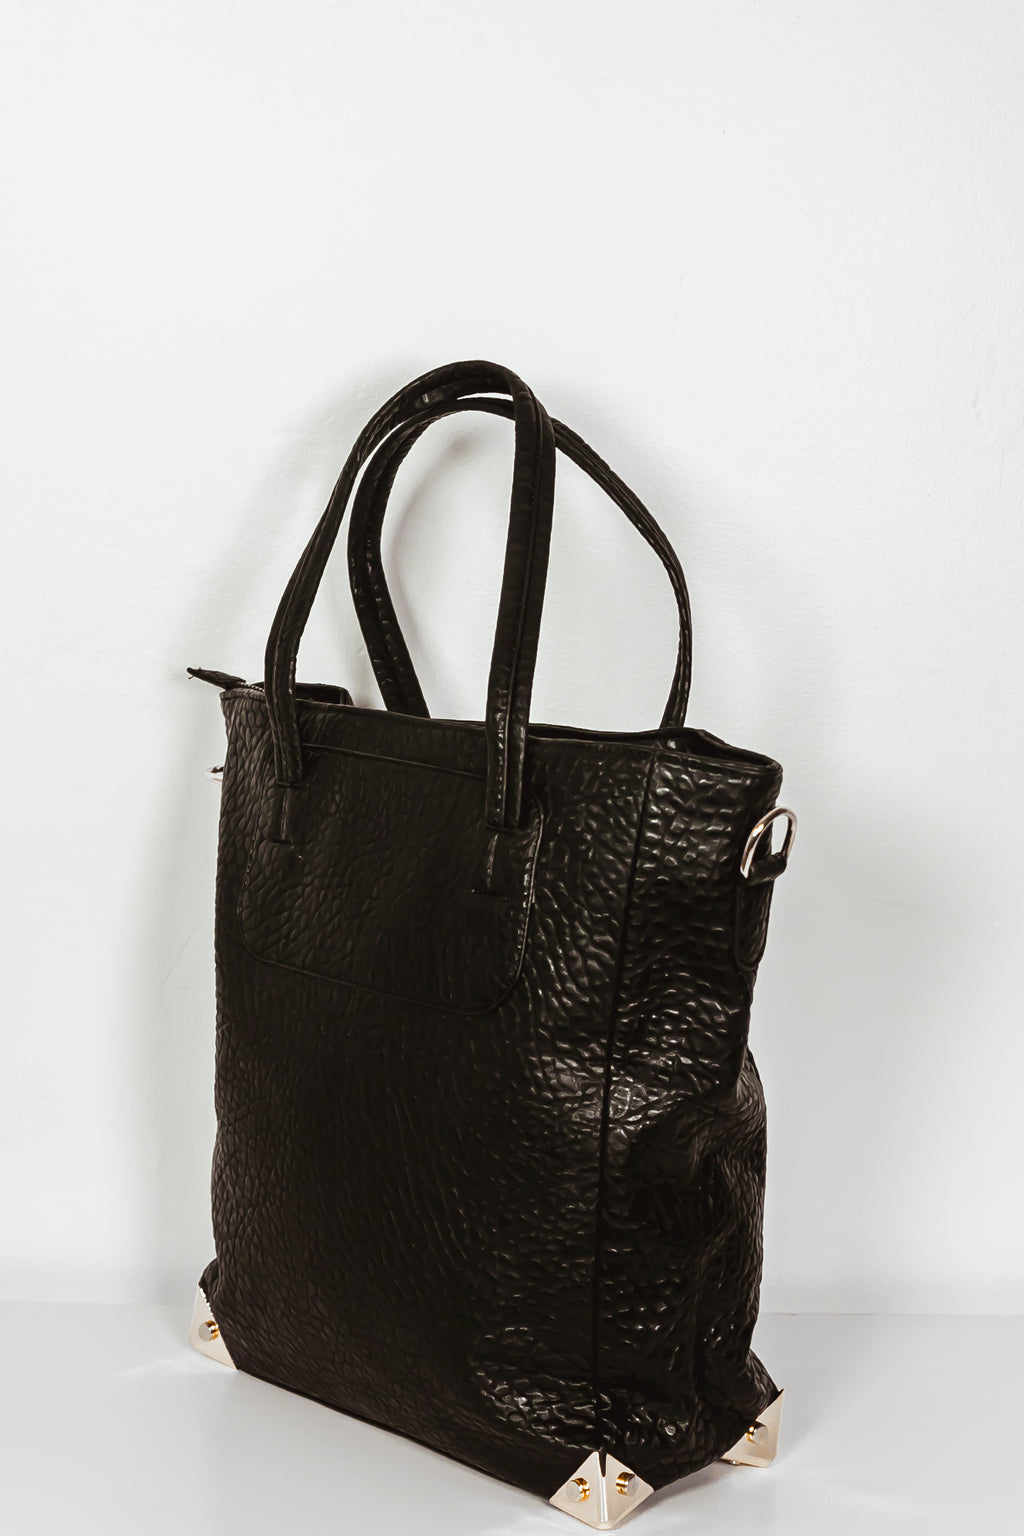 Slim Tote Medium Bag - Black